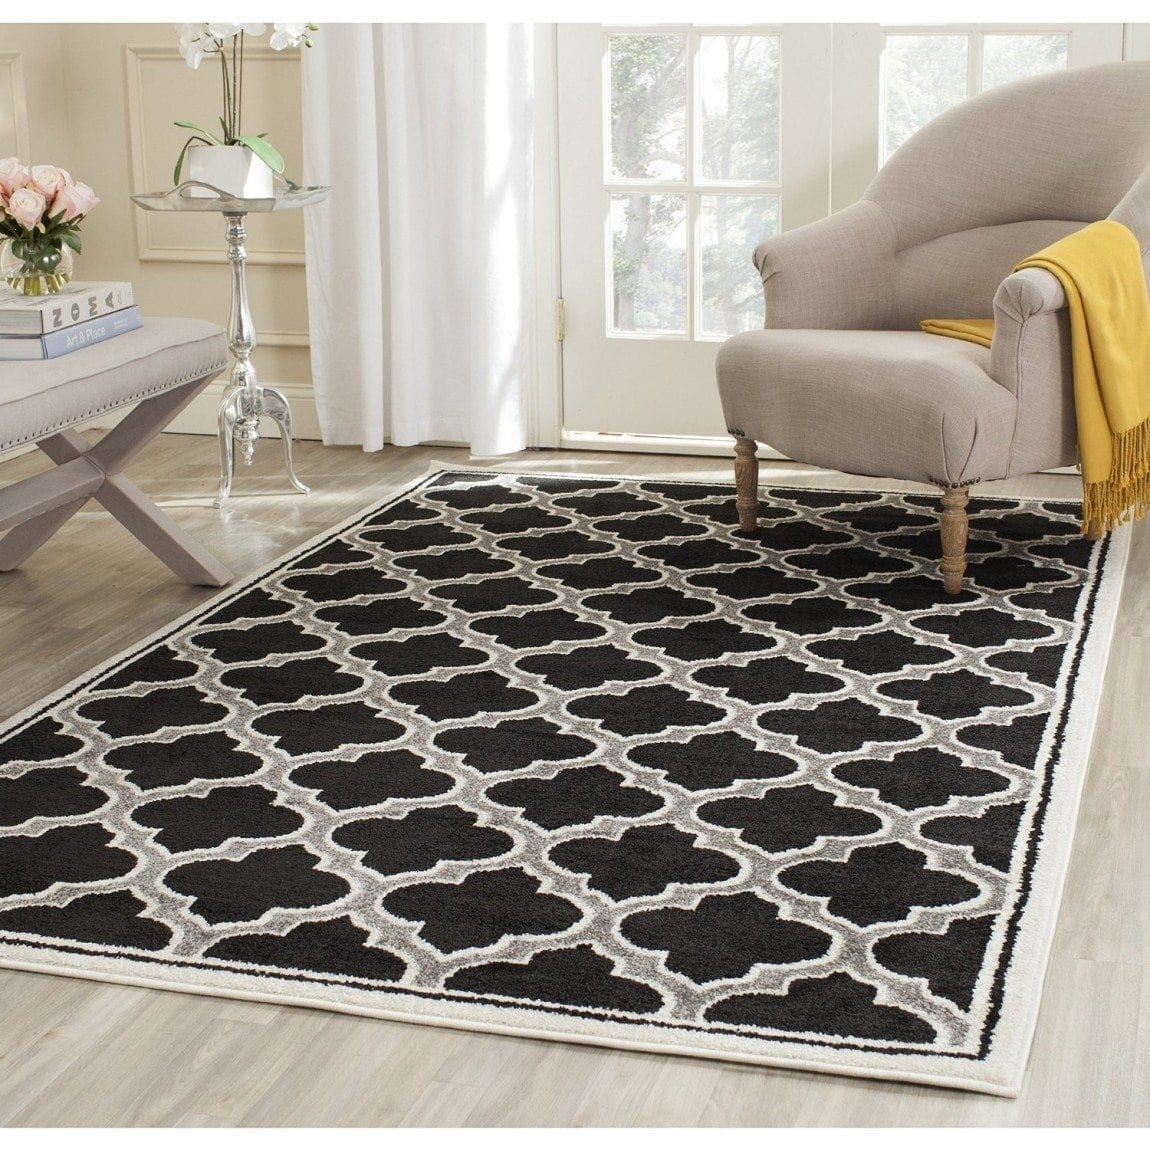 Safavieh Amherst Collection AMT412G Anthracite and Ivory Indoor: Outdoor Area Rug, 8 feet by 10 feet (8' x 10')